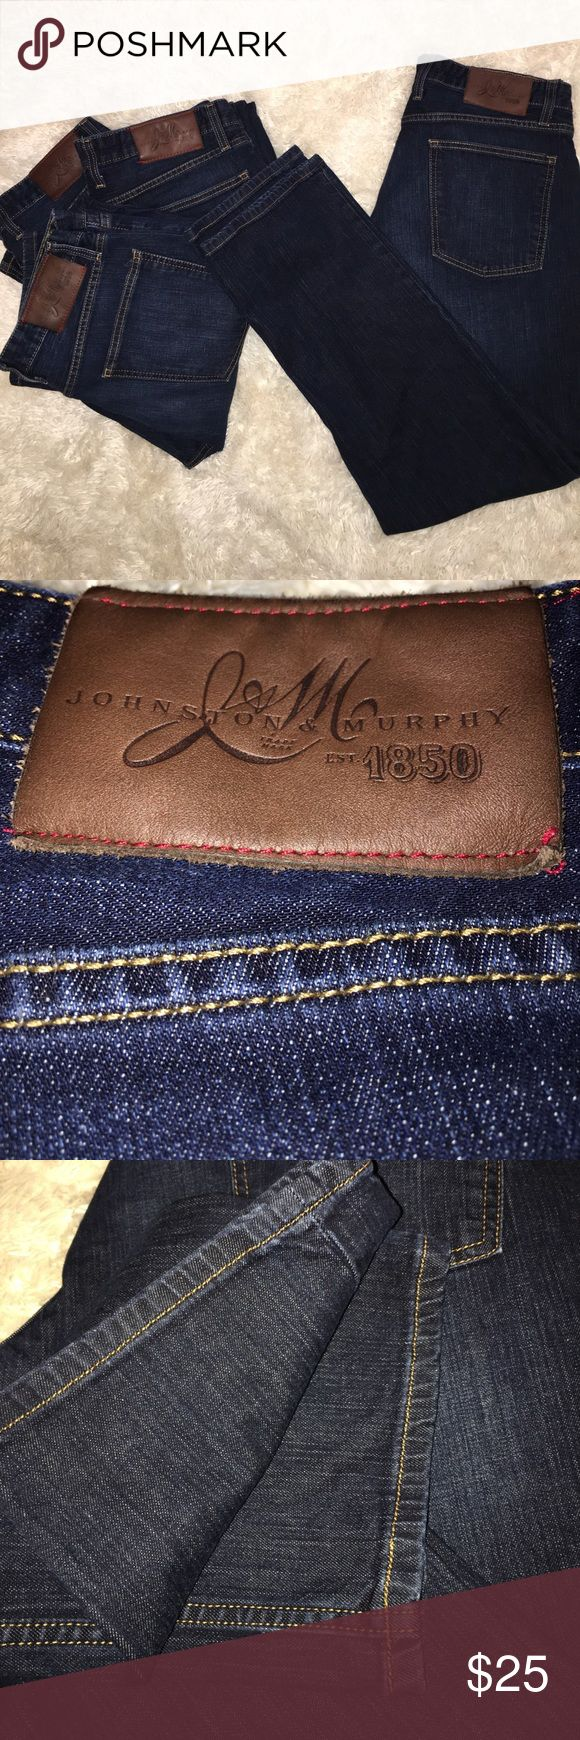 Johnston & Murphy Regular Fit LIKE NEW, worn only a couple times because they are too large now, regular fit, perfect condition. Johnston & Murphy Jeans